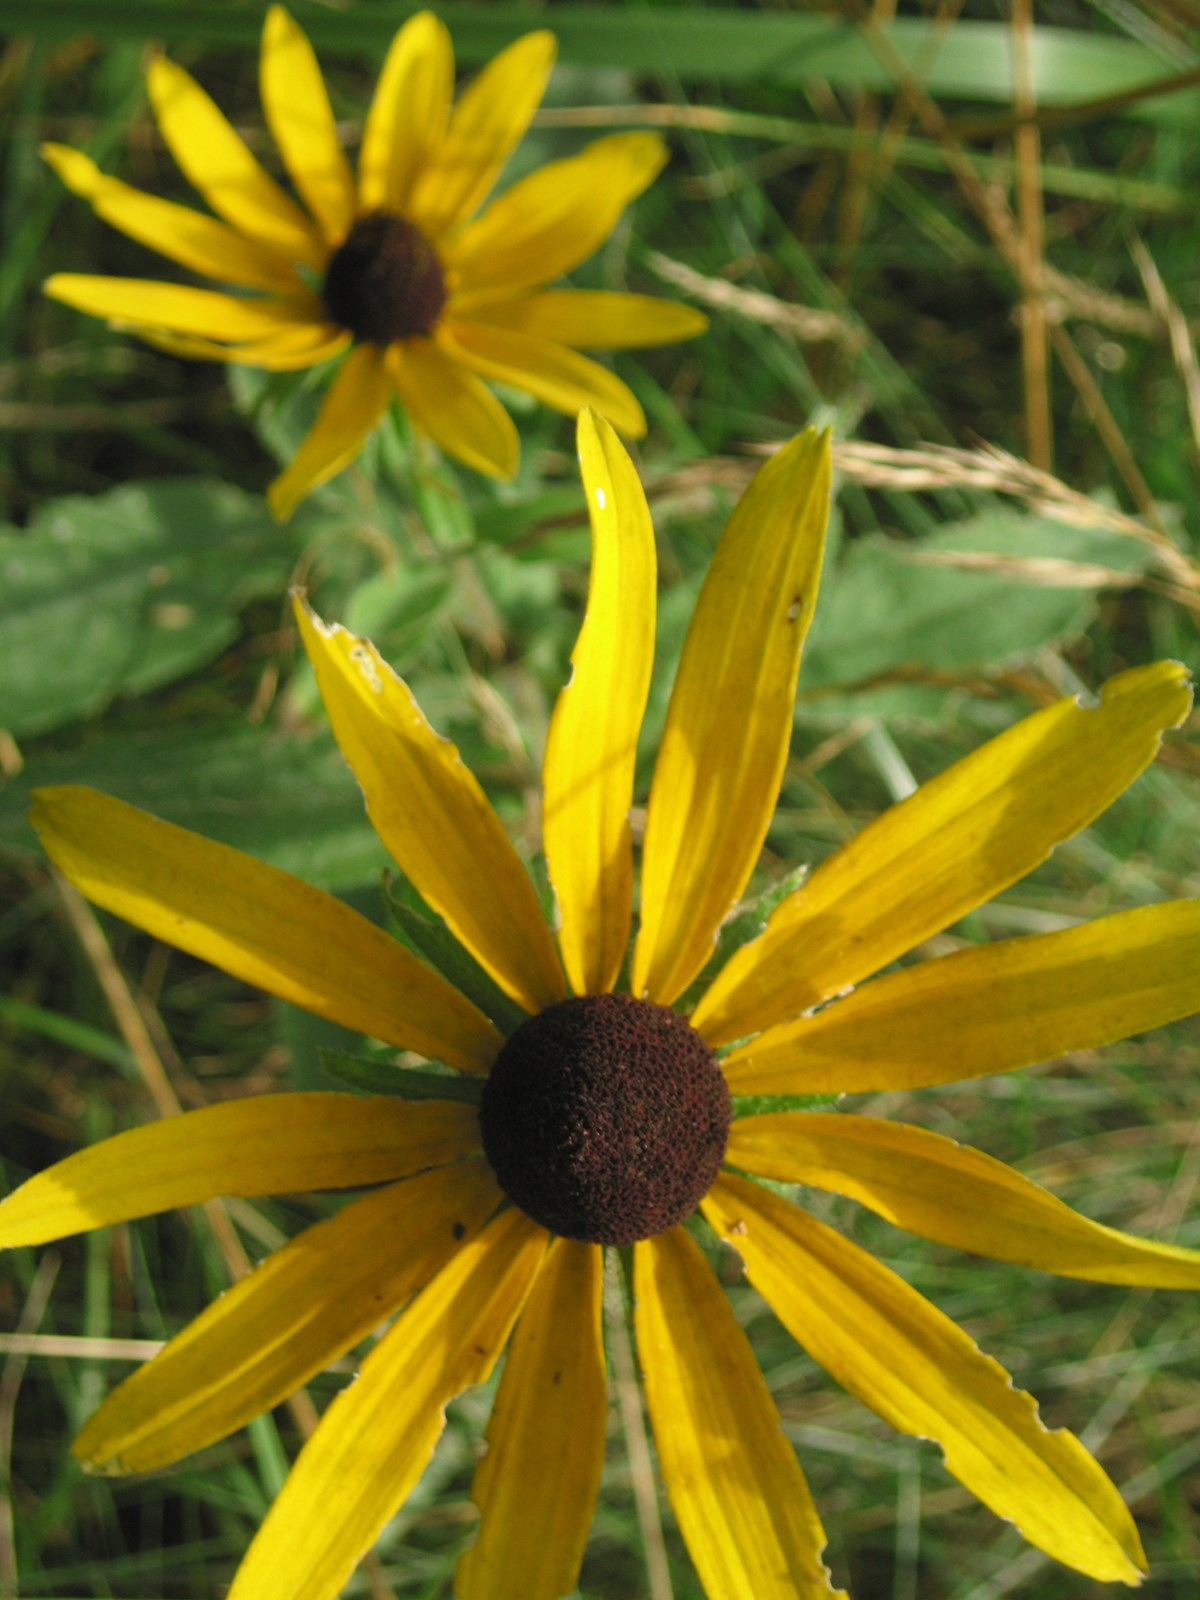 Black-eyed susan (Rudbeckia hirta) in bloom at Sagamore Hill. NPS/Scott Gurney